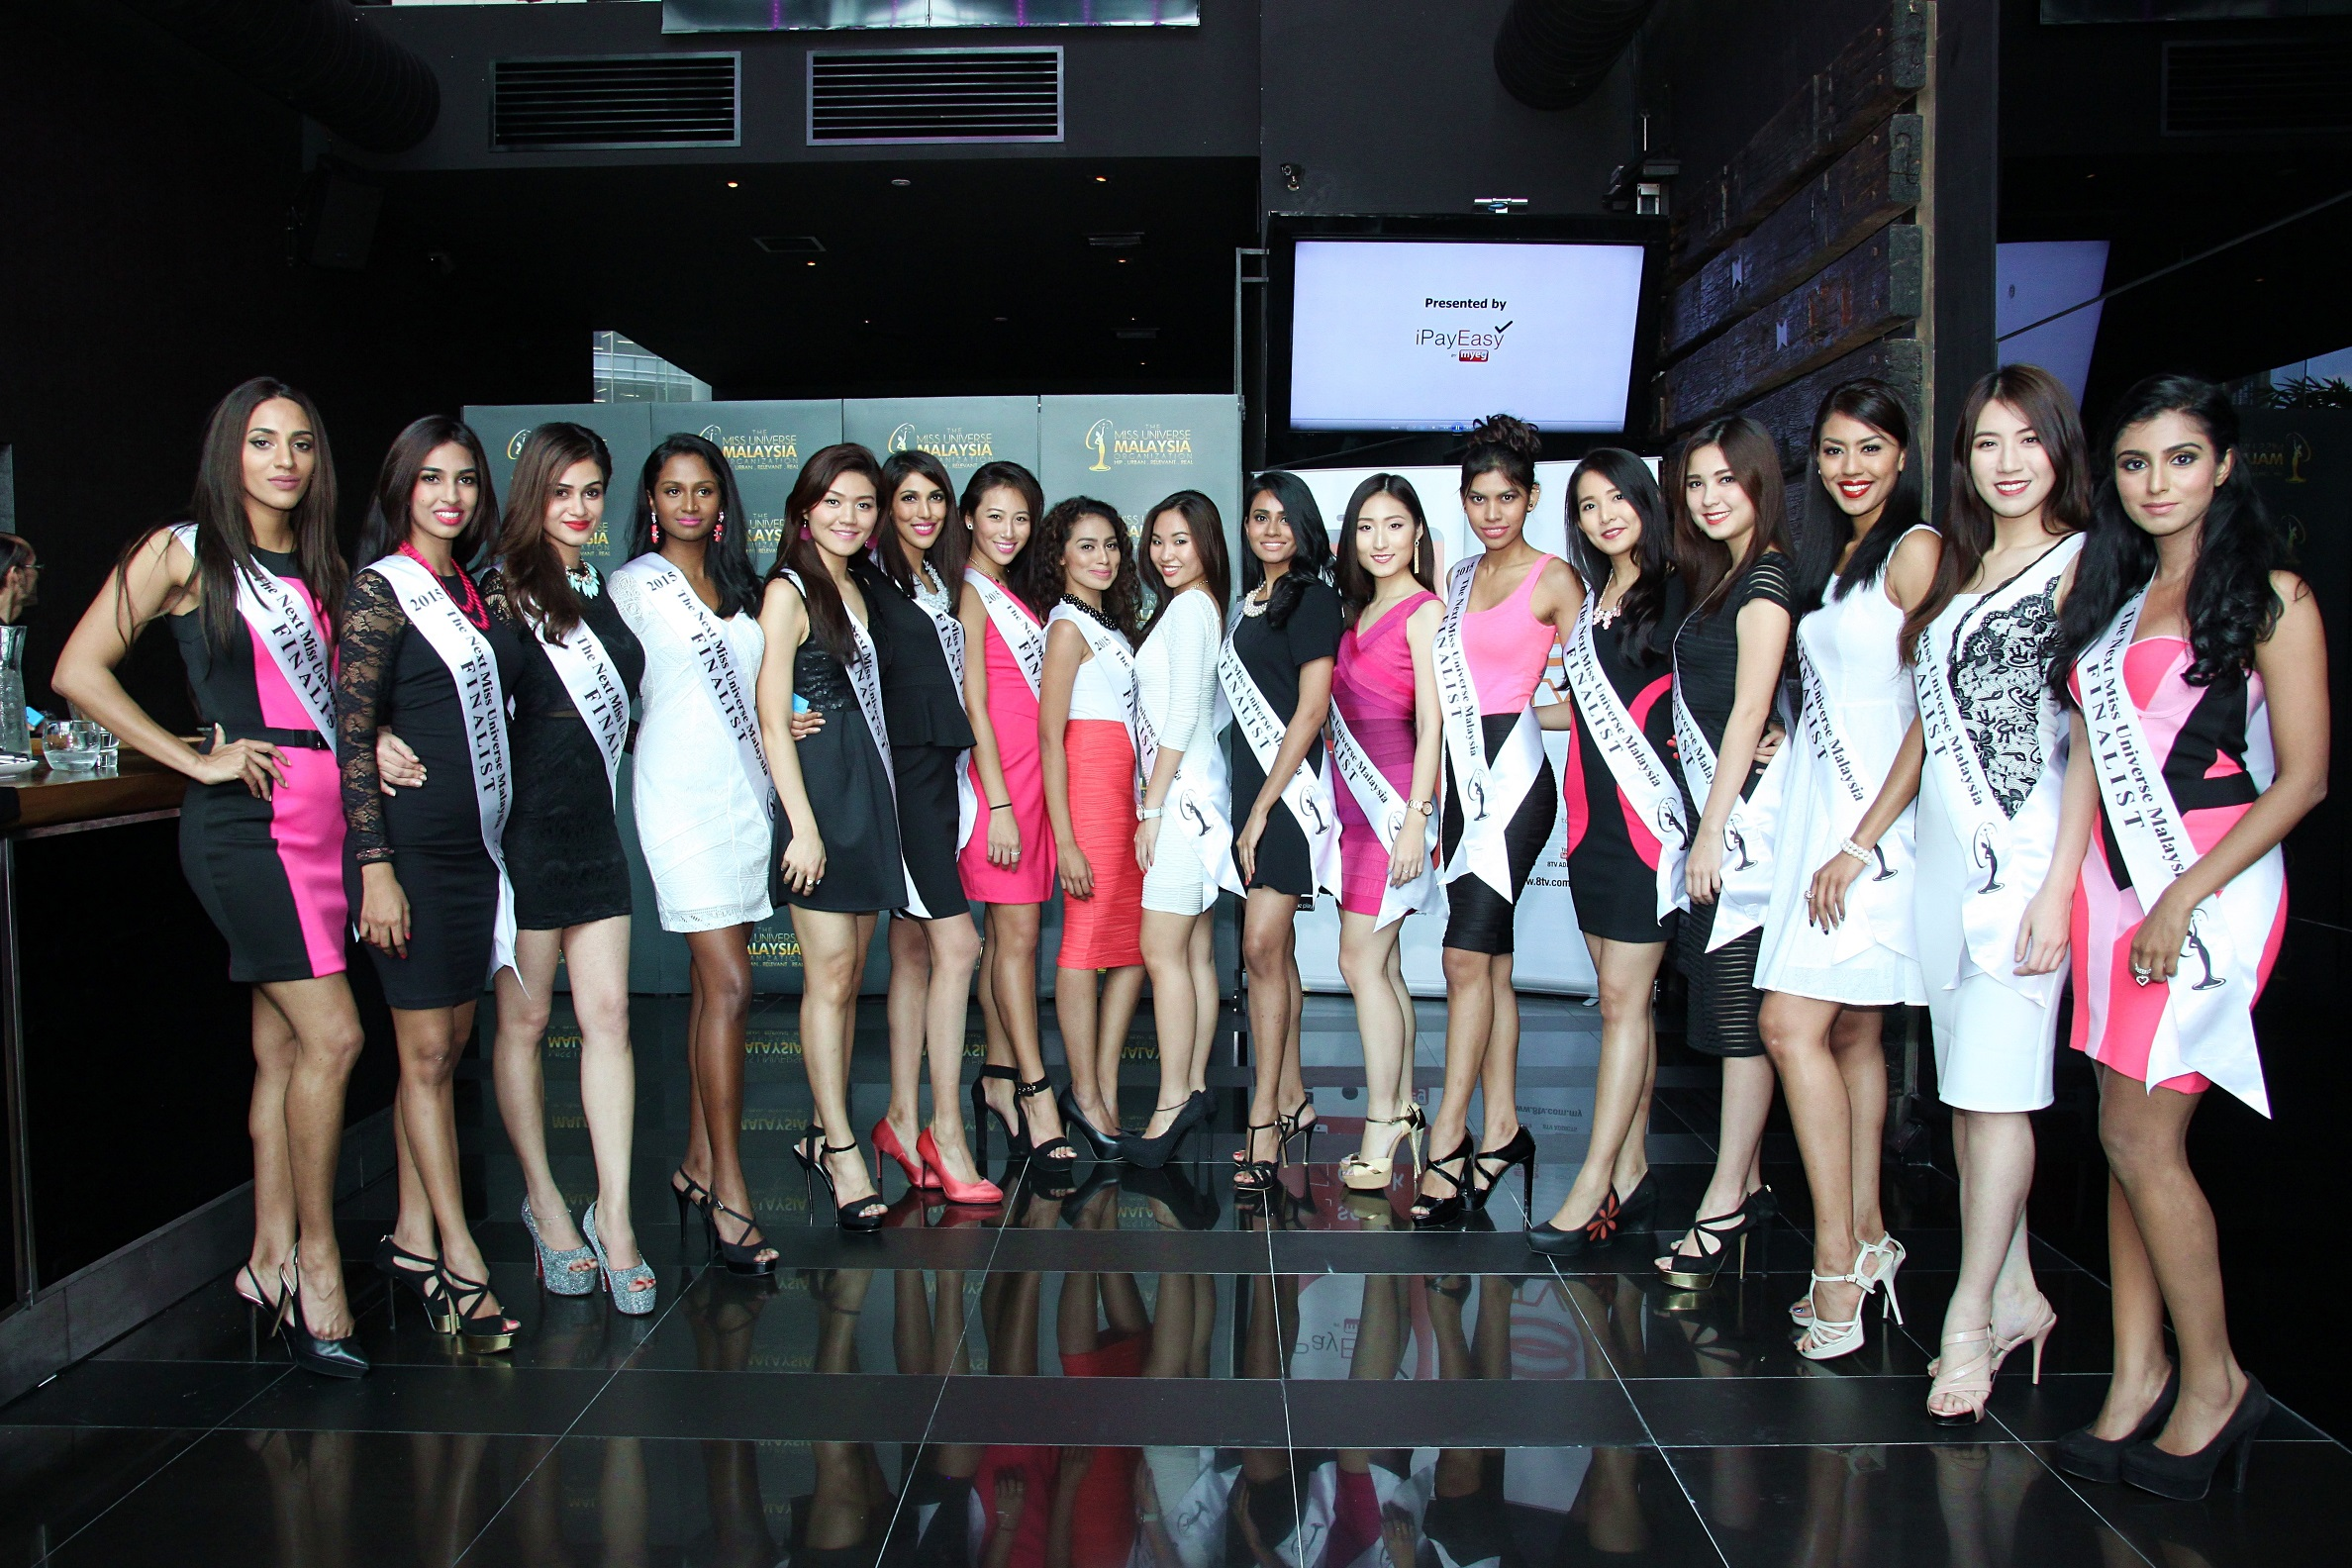 The Next MISS UNIVERSE MALAYSIA 2015 Reality TV Show To Premiere on YouTube & 8TV